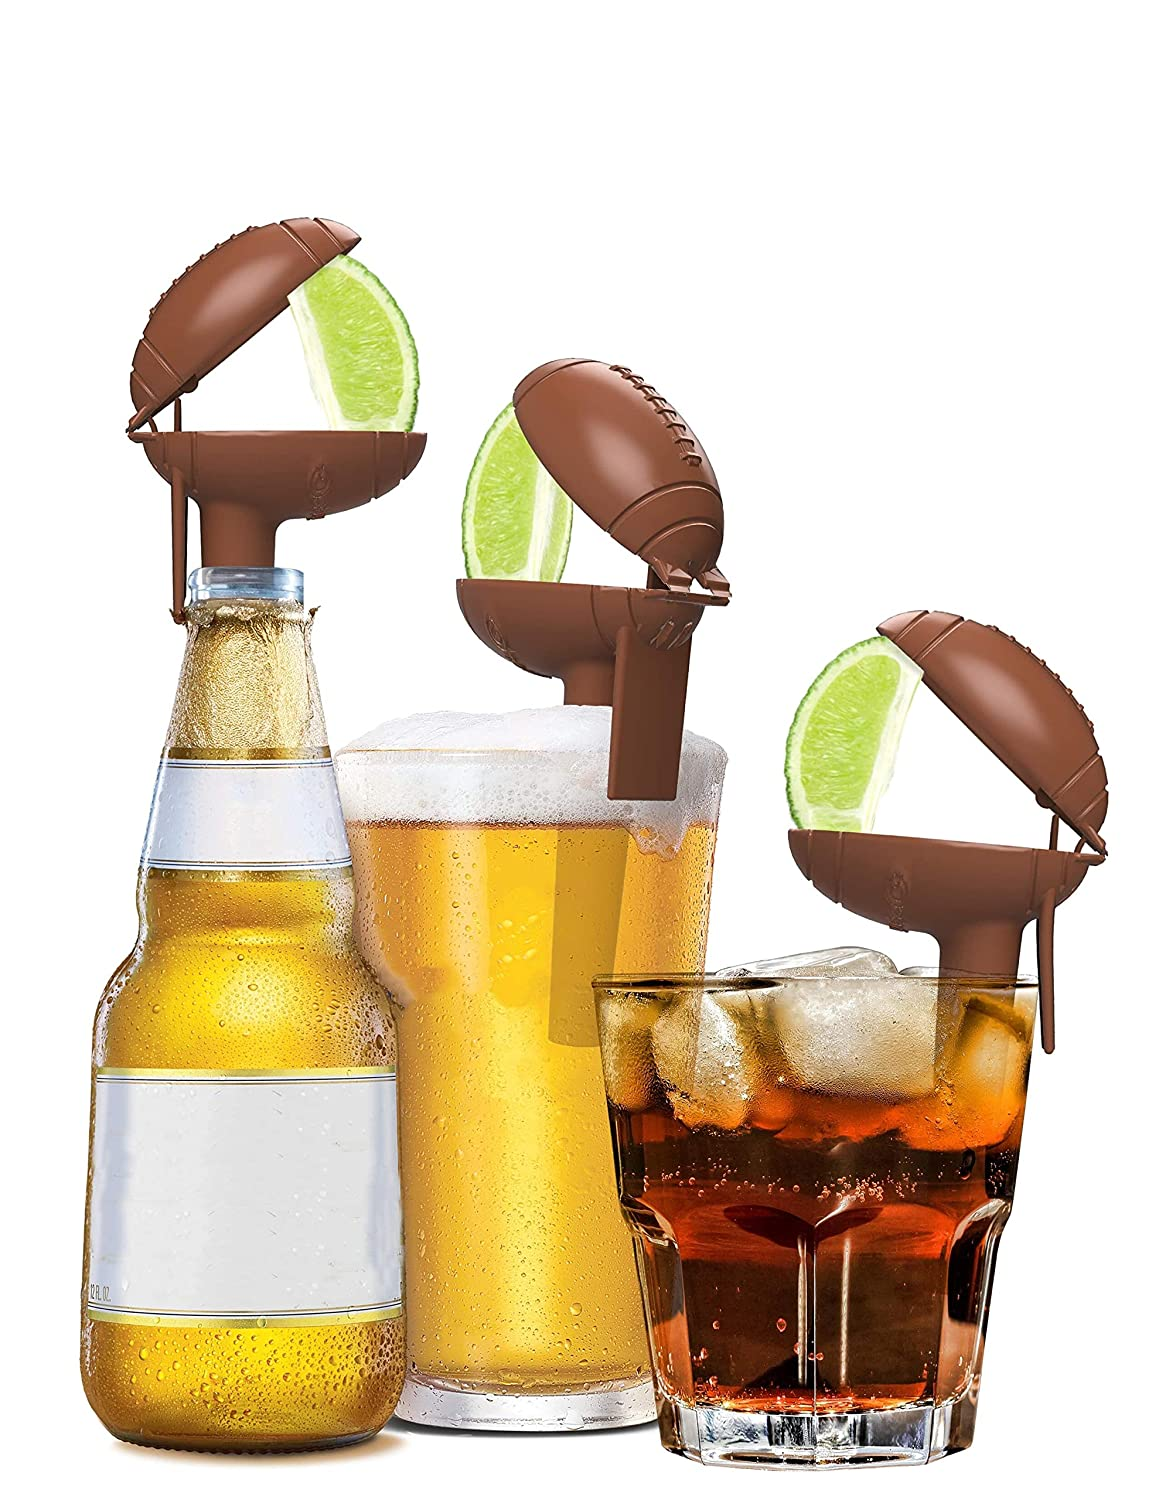 Football Edition HeadLimes Clip-On Citrus Squeezer Adds Lime or Lemon Directly to a Drink- a Fun Novelty Party Gift 8-pack Handheld Juicer or Bar Accessory